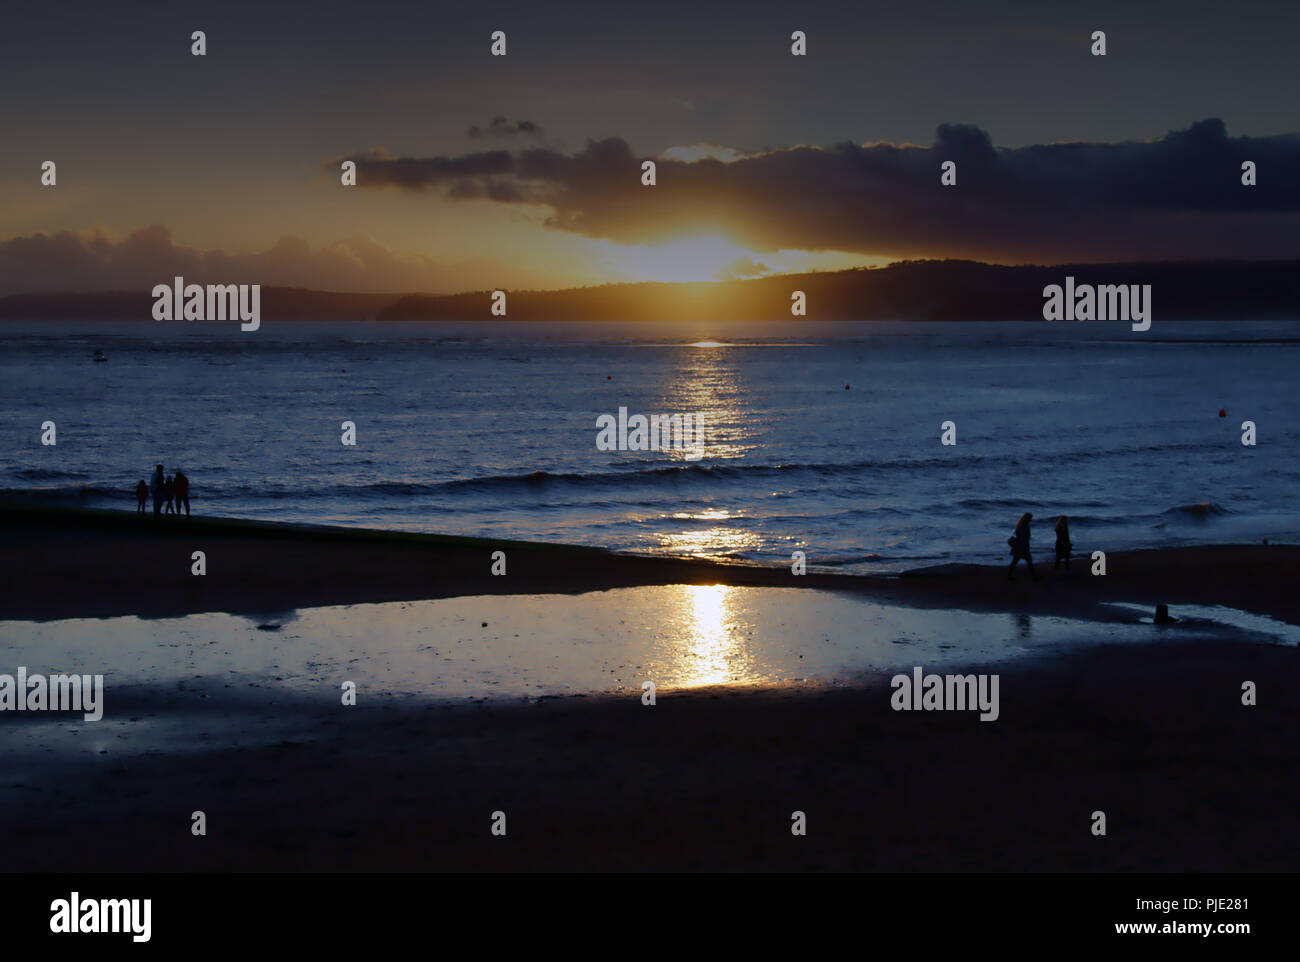 A winter sunset on a calm day at Exmouth beach in Devon, England, a family enjoy a last walk at sunset - Stock Image